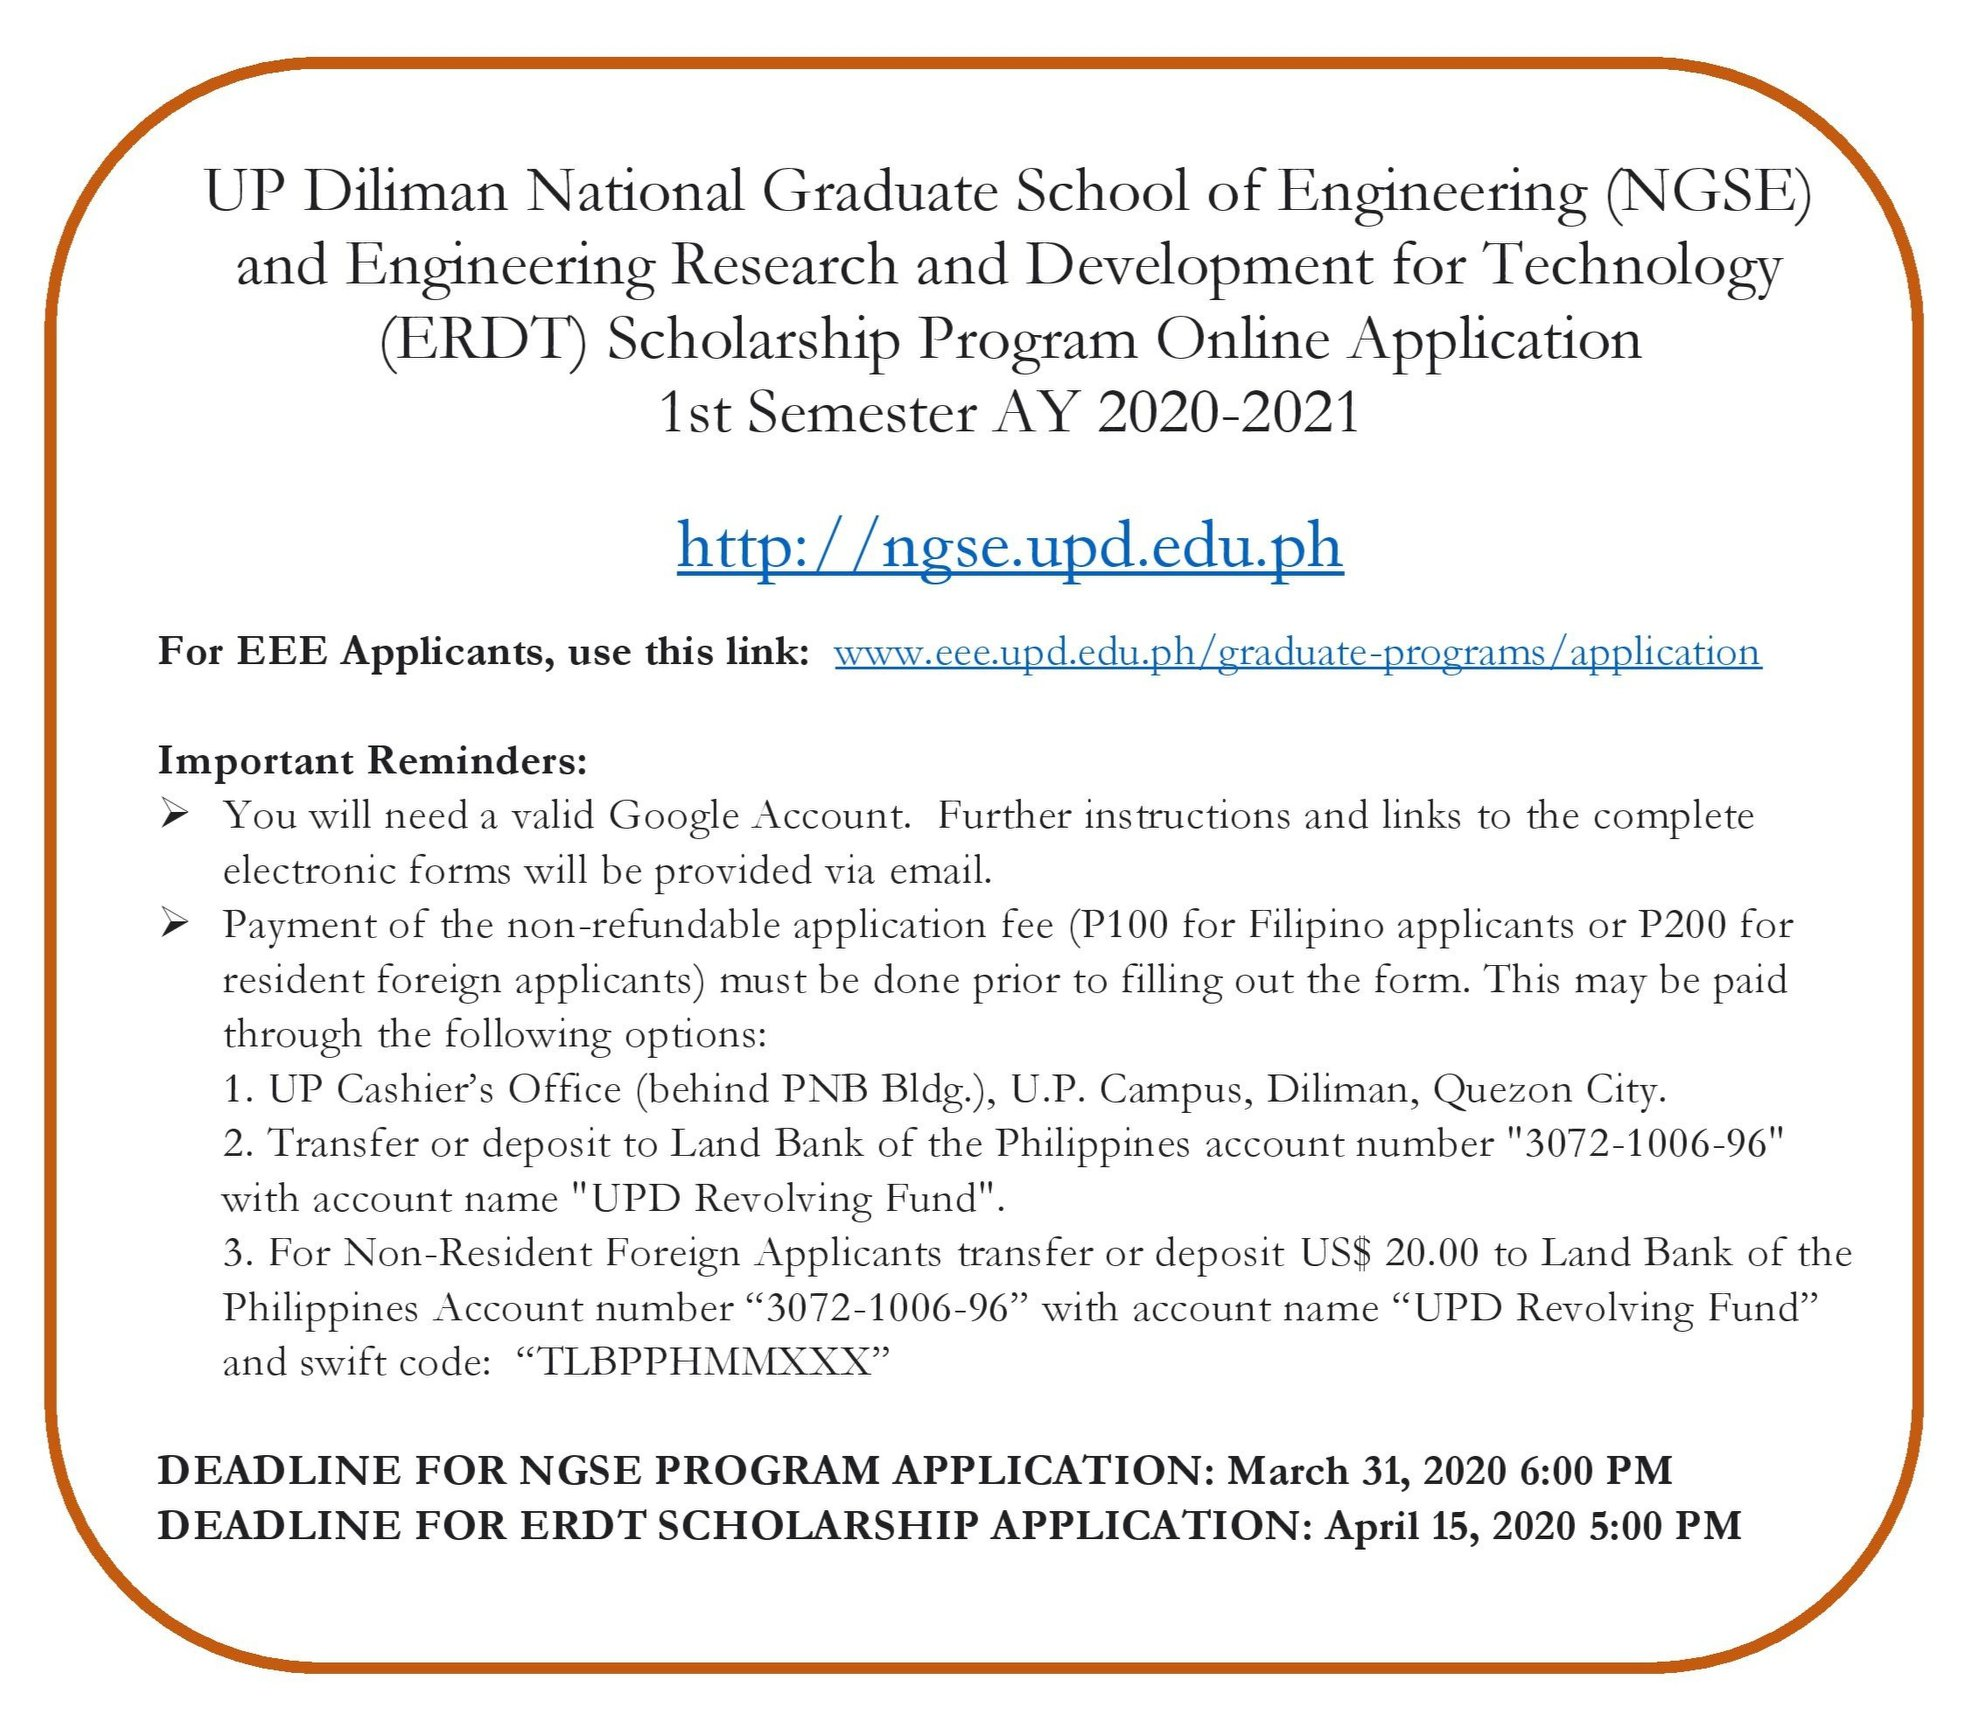 Applications in Engineering Graduate Programs for 1st Sem AY2020-2021